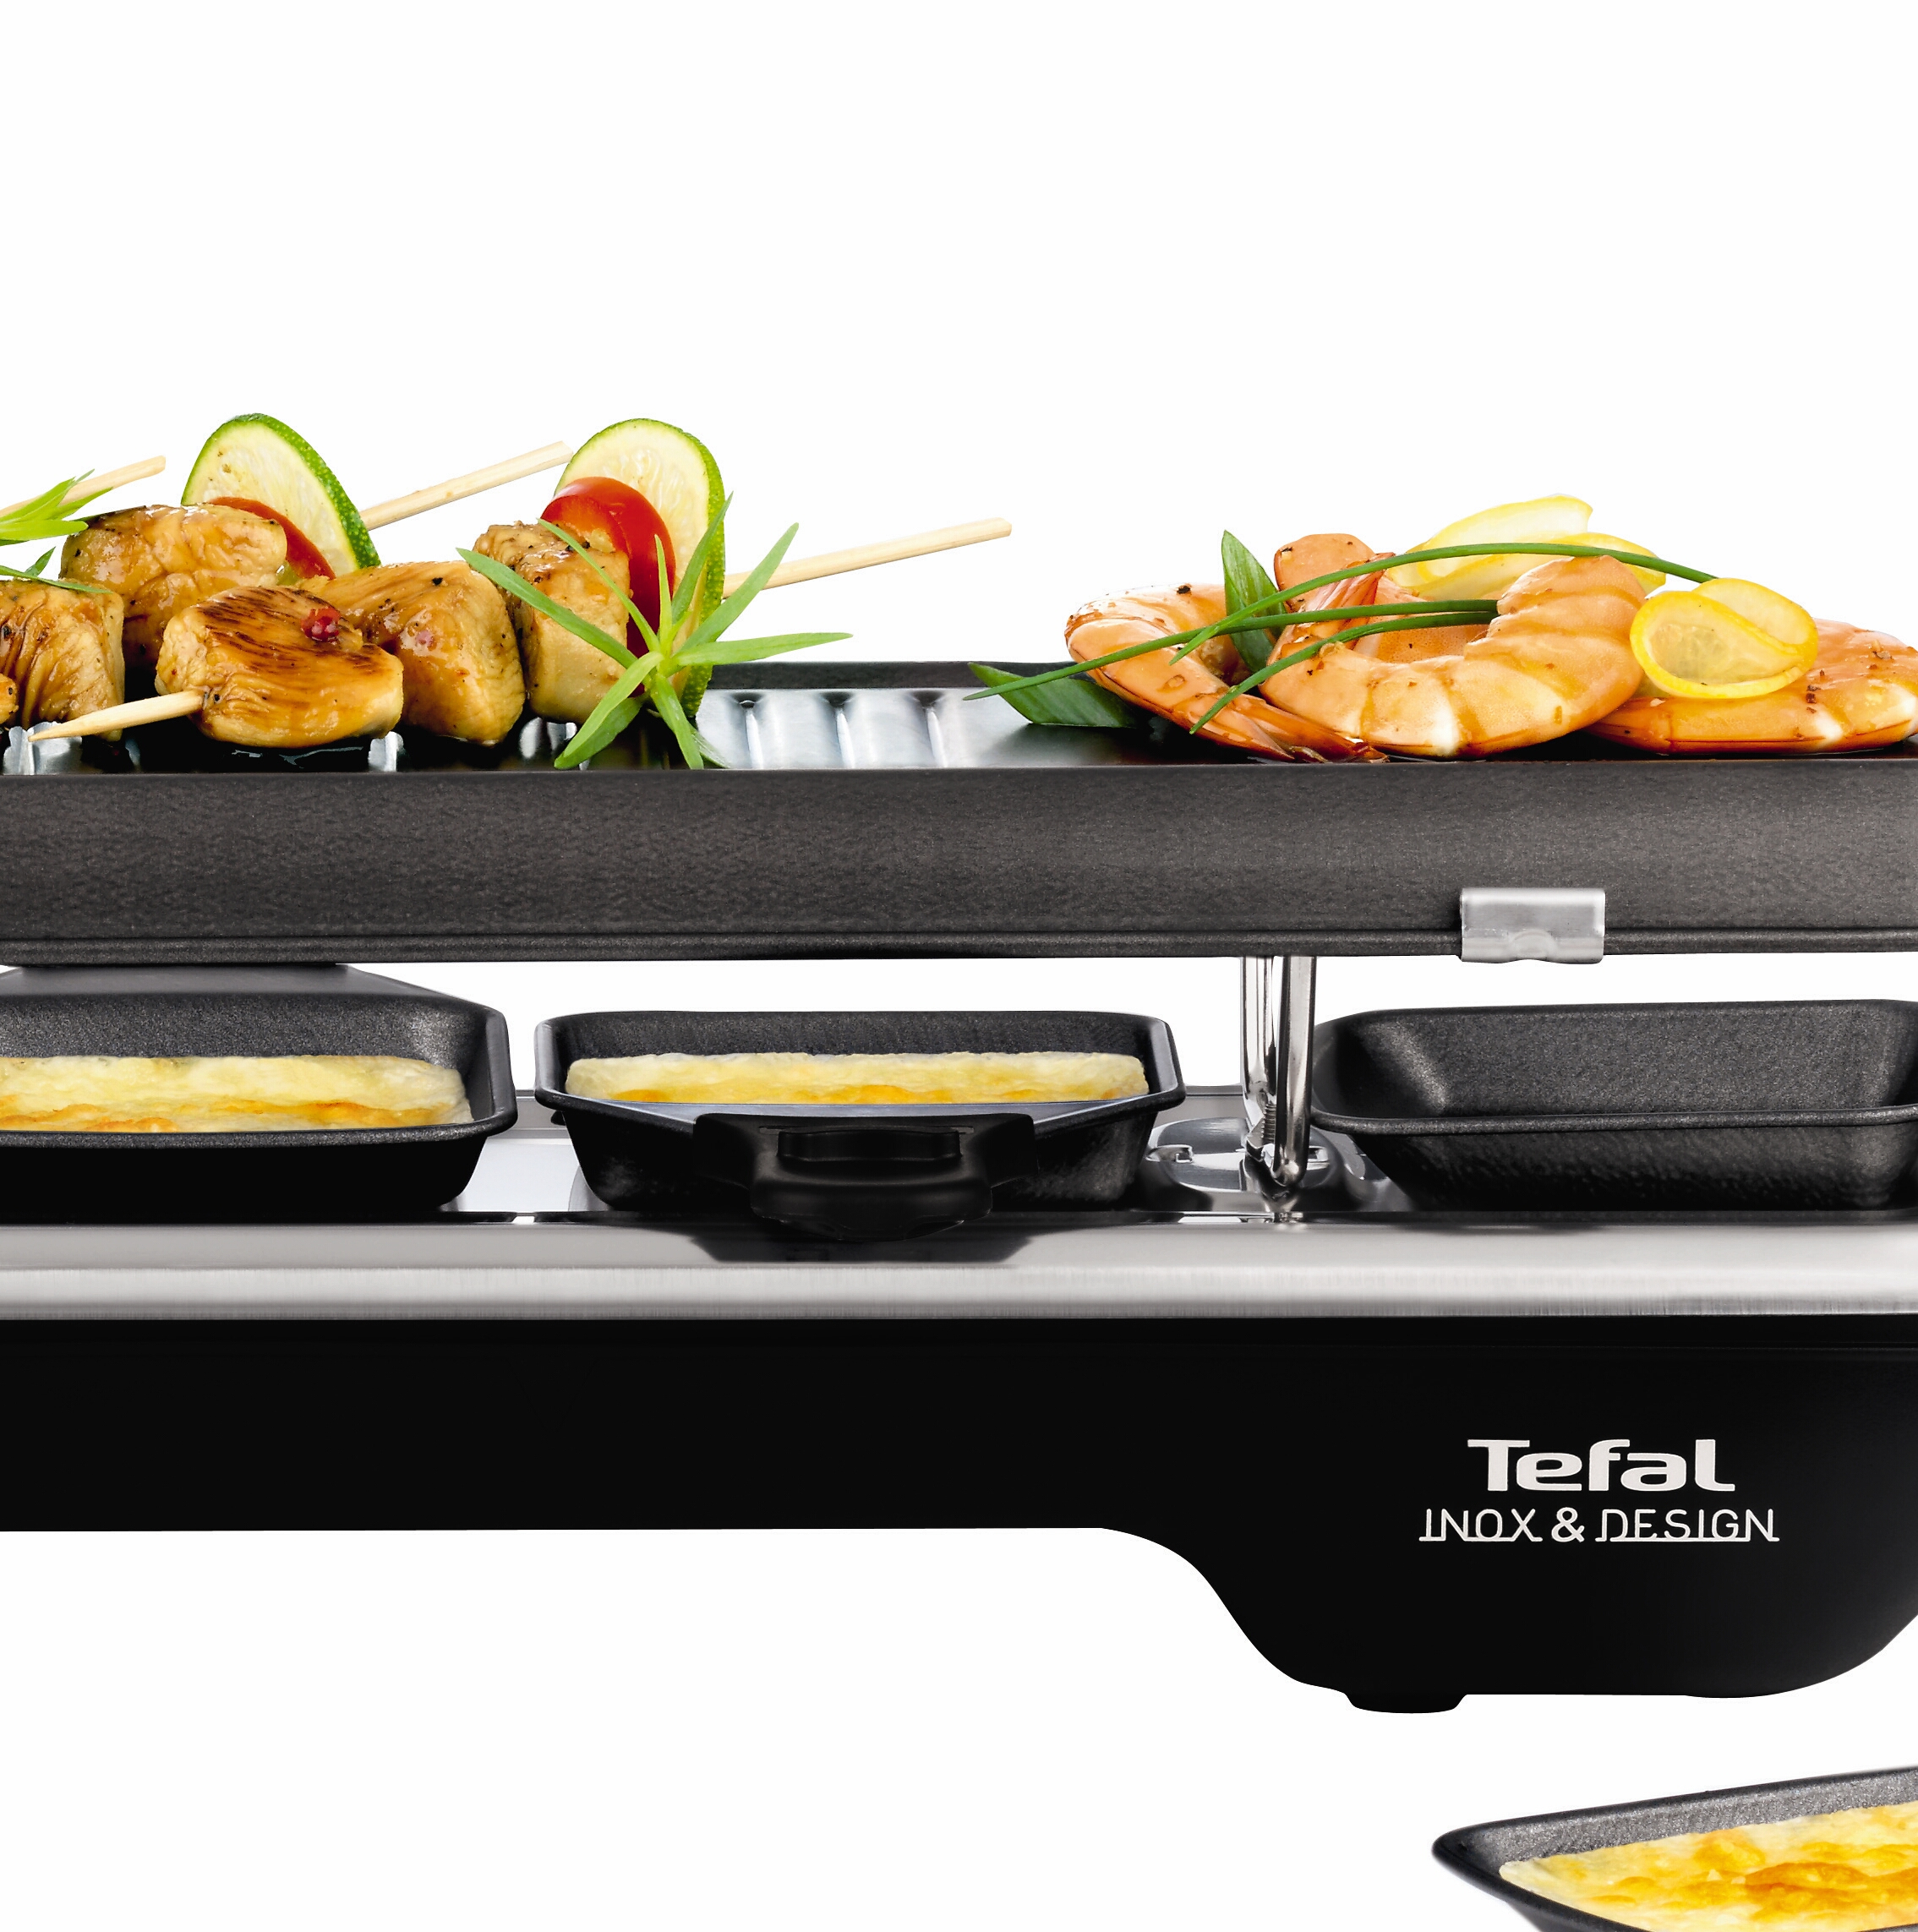 TEFAL-RE5228-Simply-Line-Inox-amp-Design-Black-Stainless-steel-1050-W-Marketing thumbnail 3